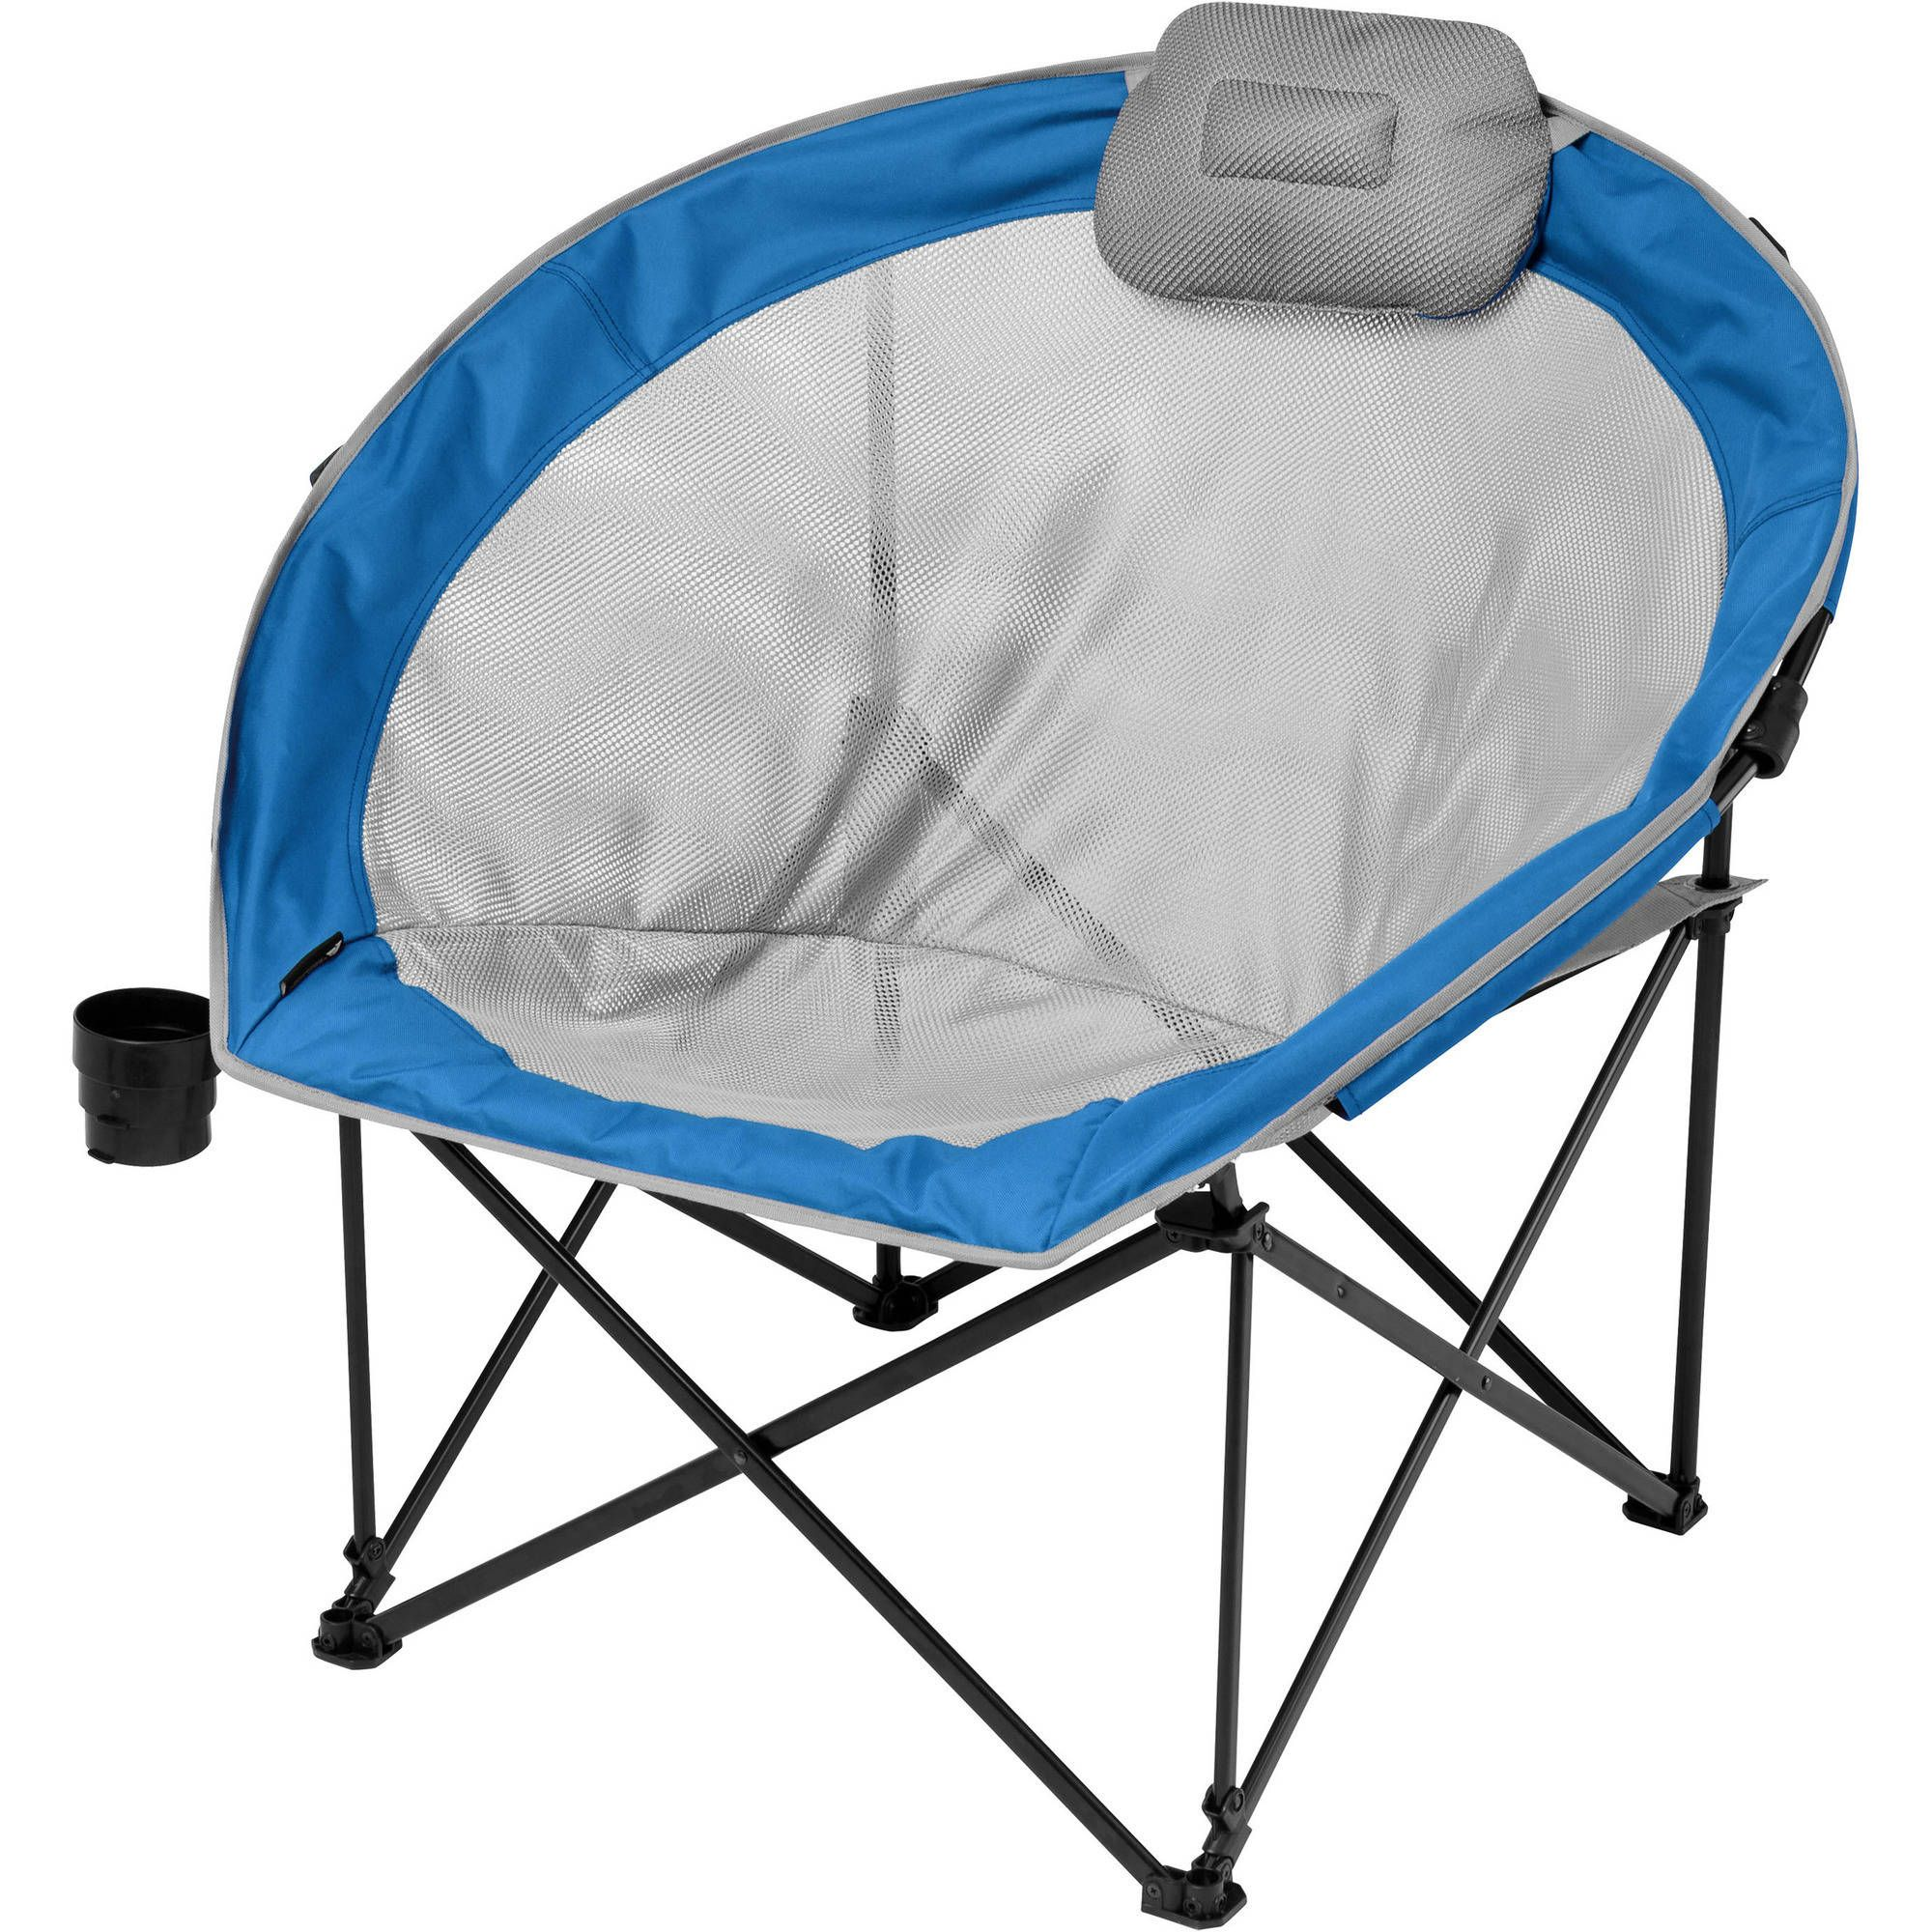 Versorgt Die Camping Platze Tragbare Outdoor Picknick Stuhle